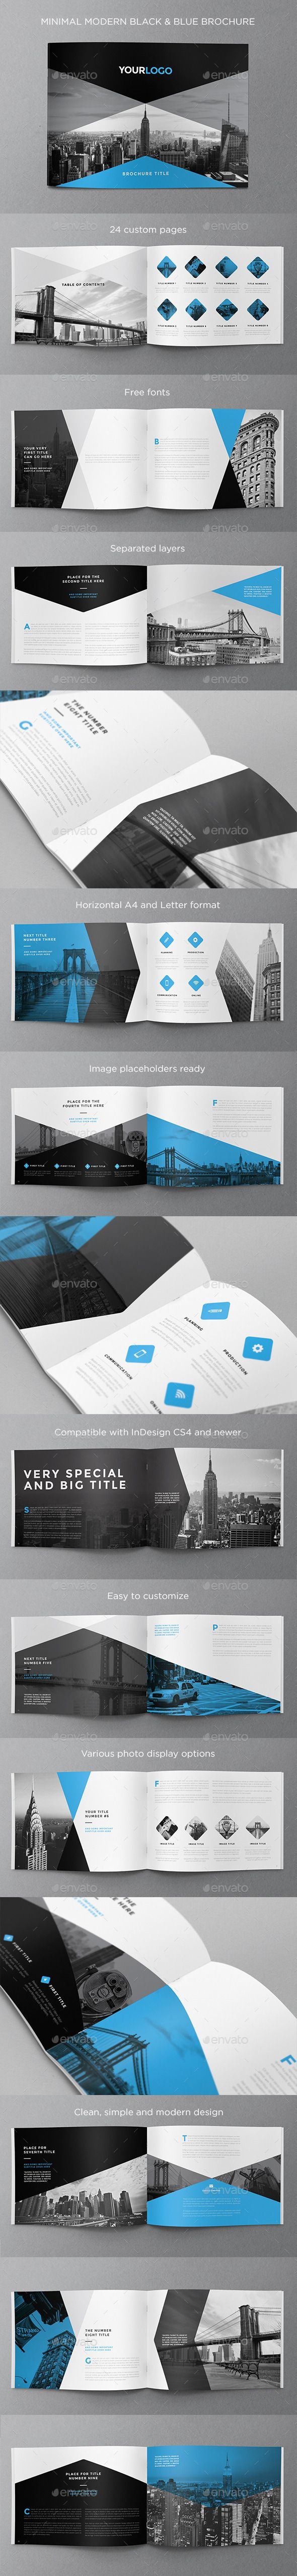 Minimal Modern Black & Blue Brochure — InDesign INDD #modern #a4 • Available here → https://graphicriver.net/item/minimal-modern-black-blue-brochure/11663356?ref=pxcr